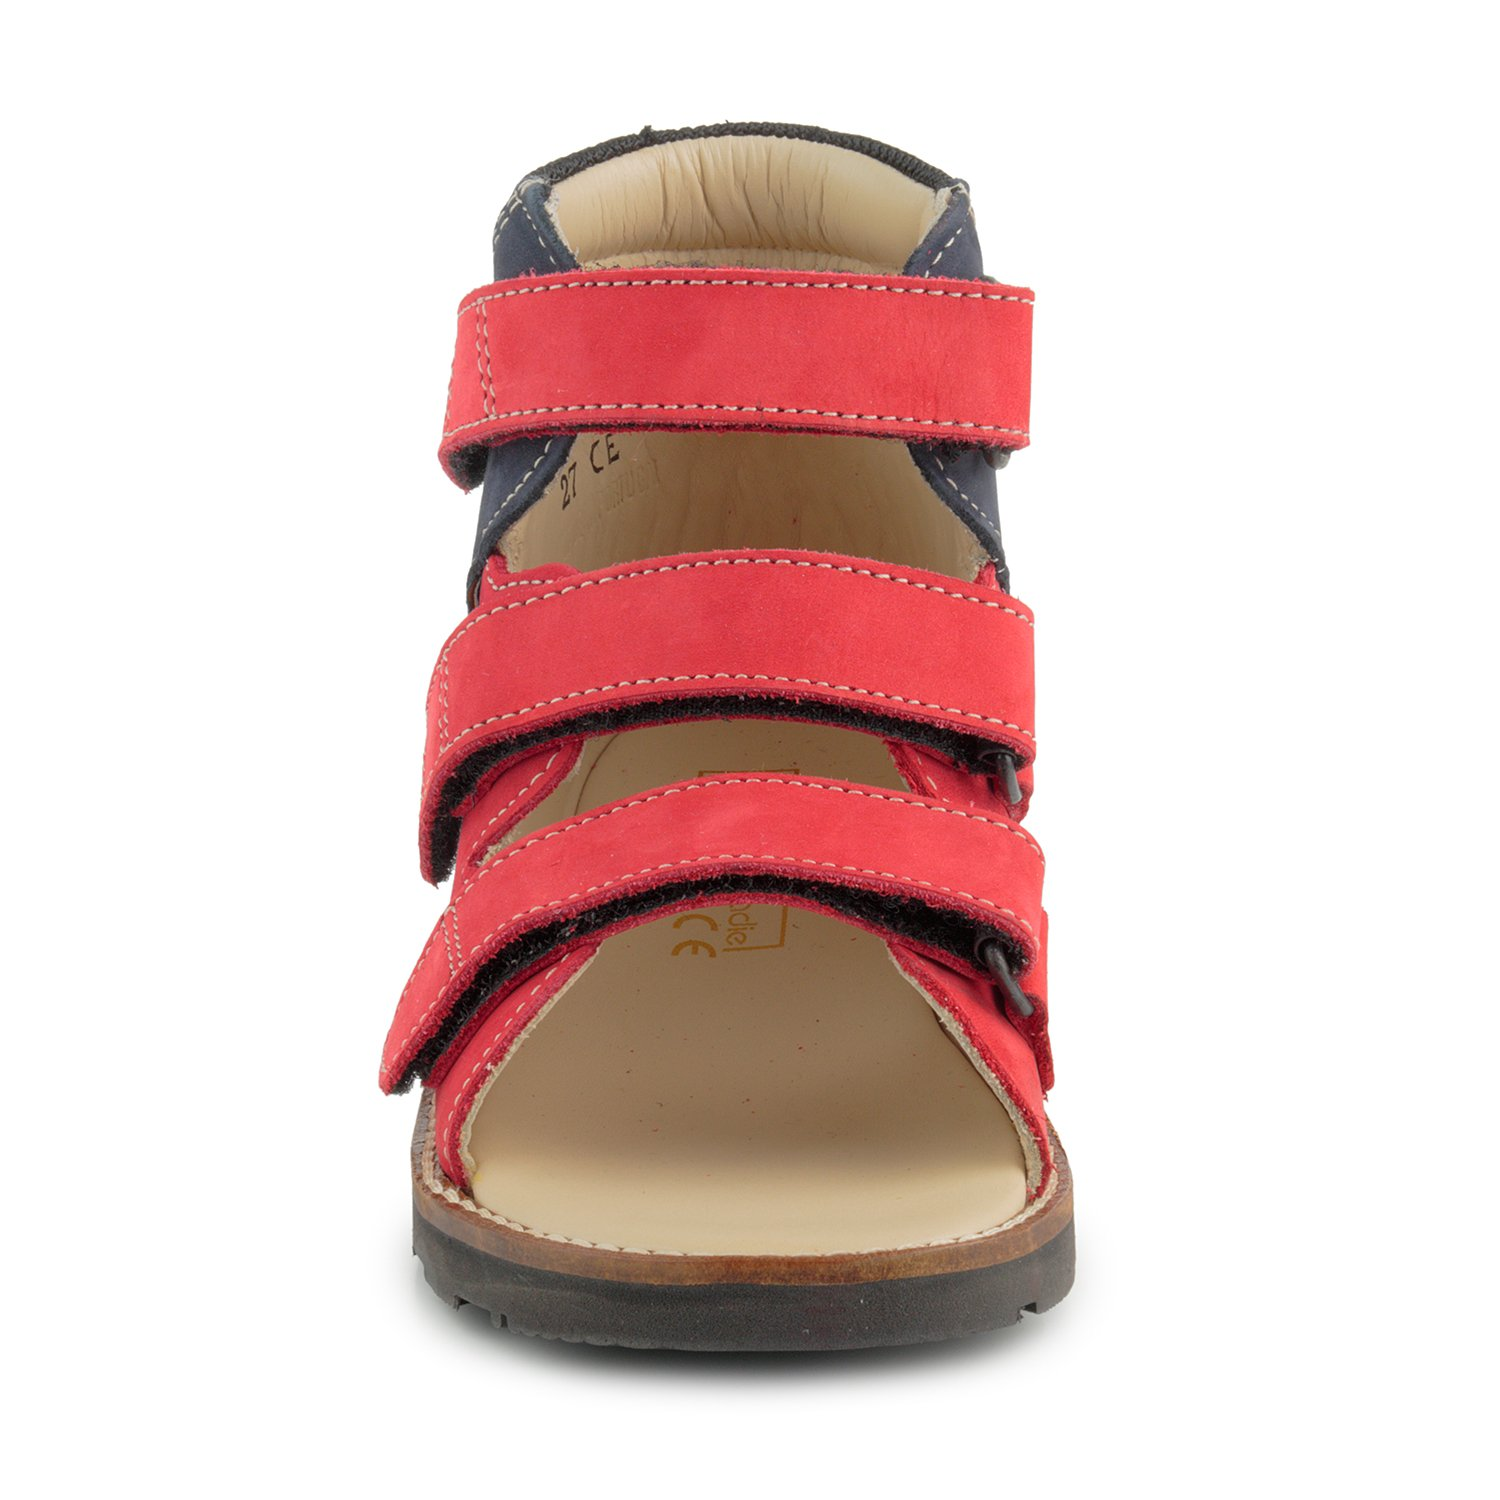 Schein Sunny 350450 TN4 Leather Ankle Support Sandal